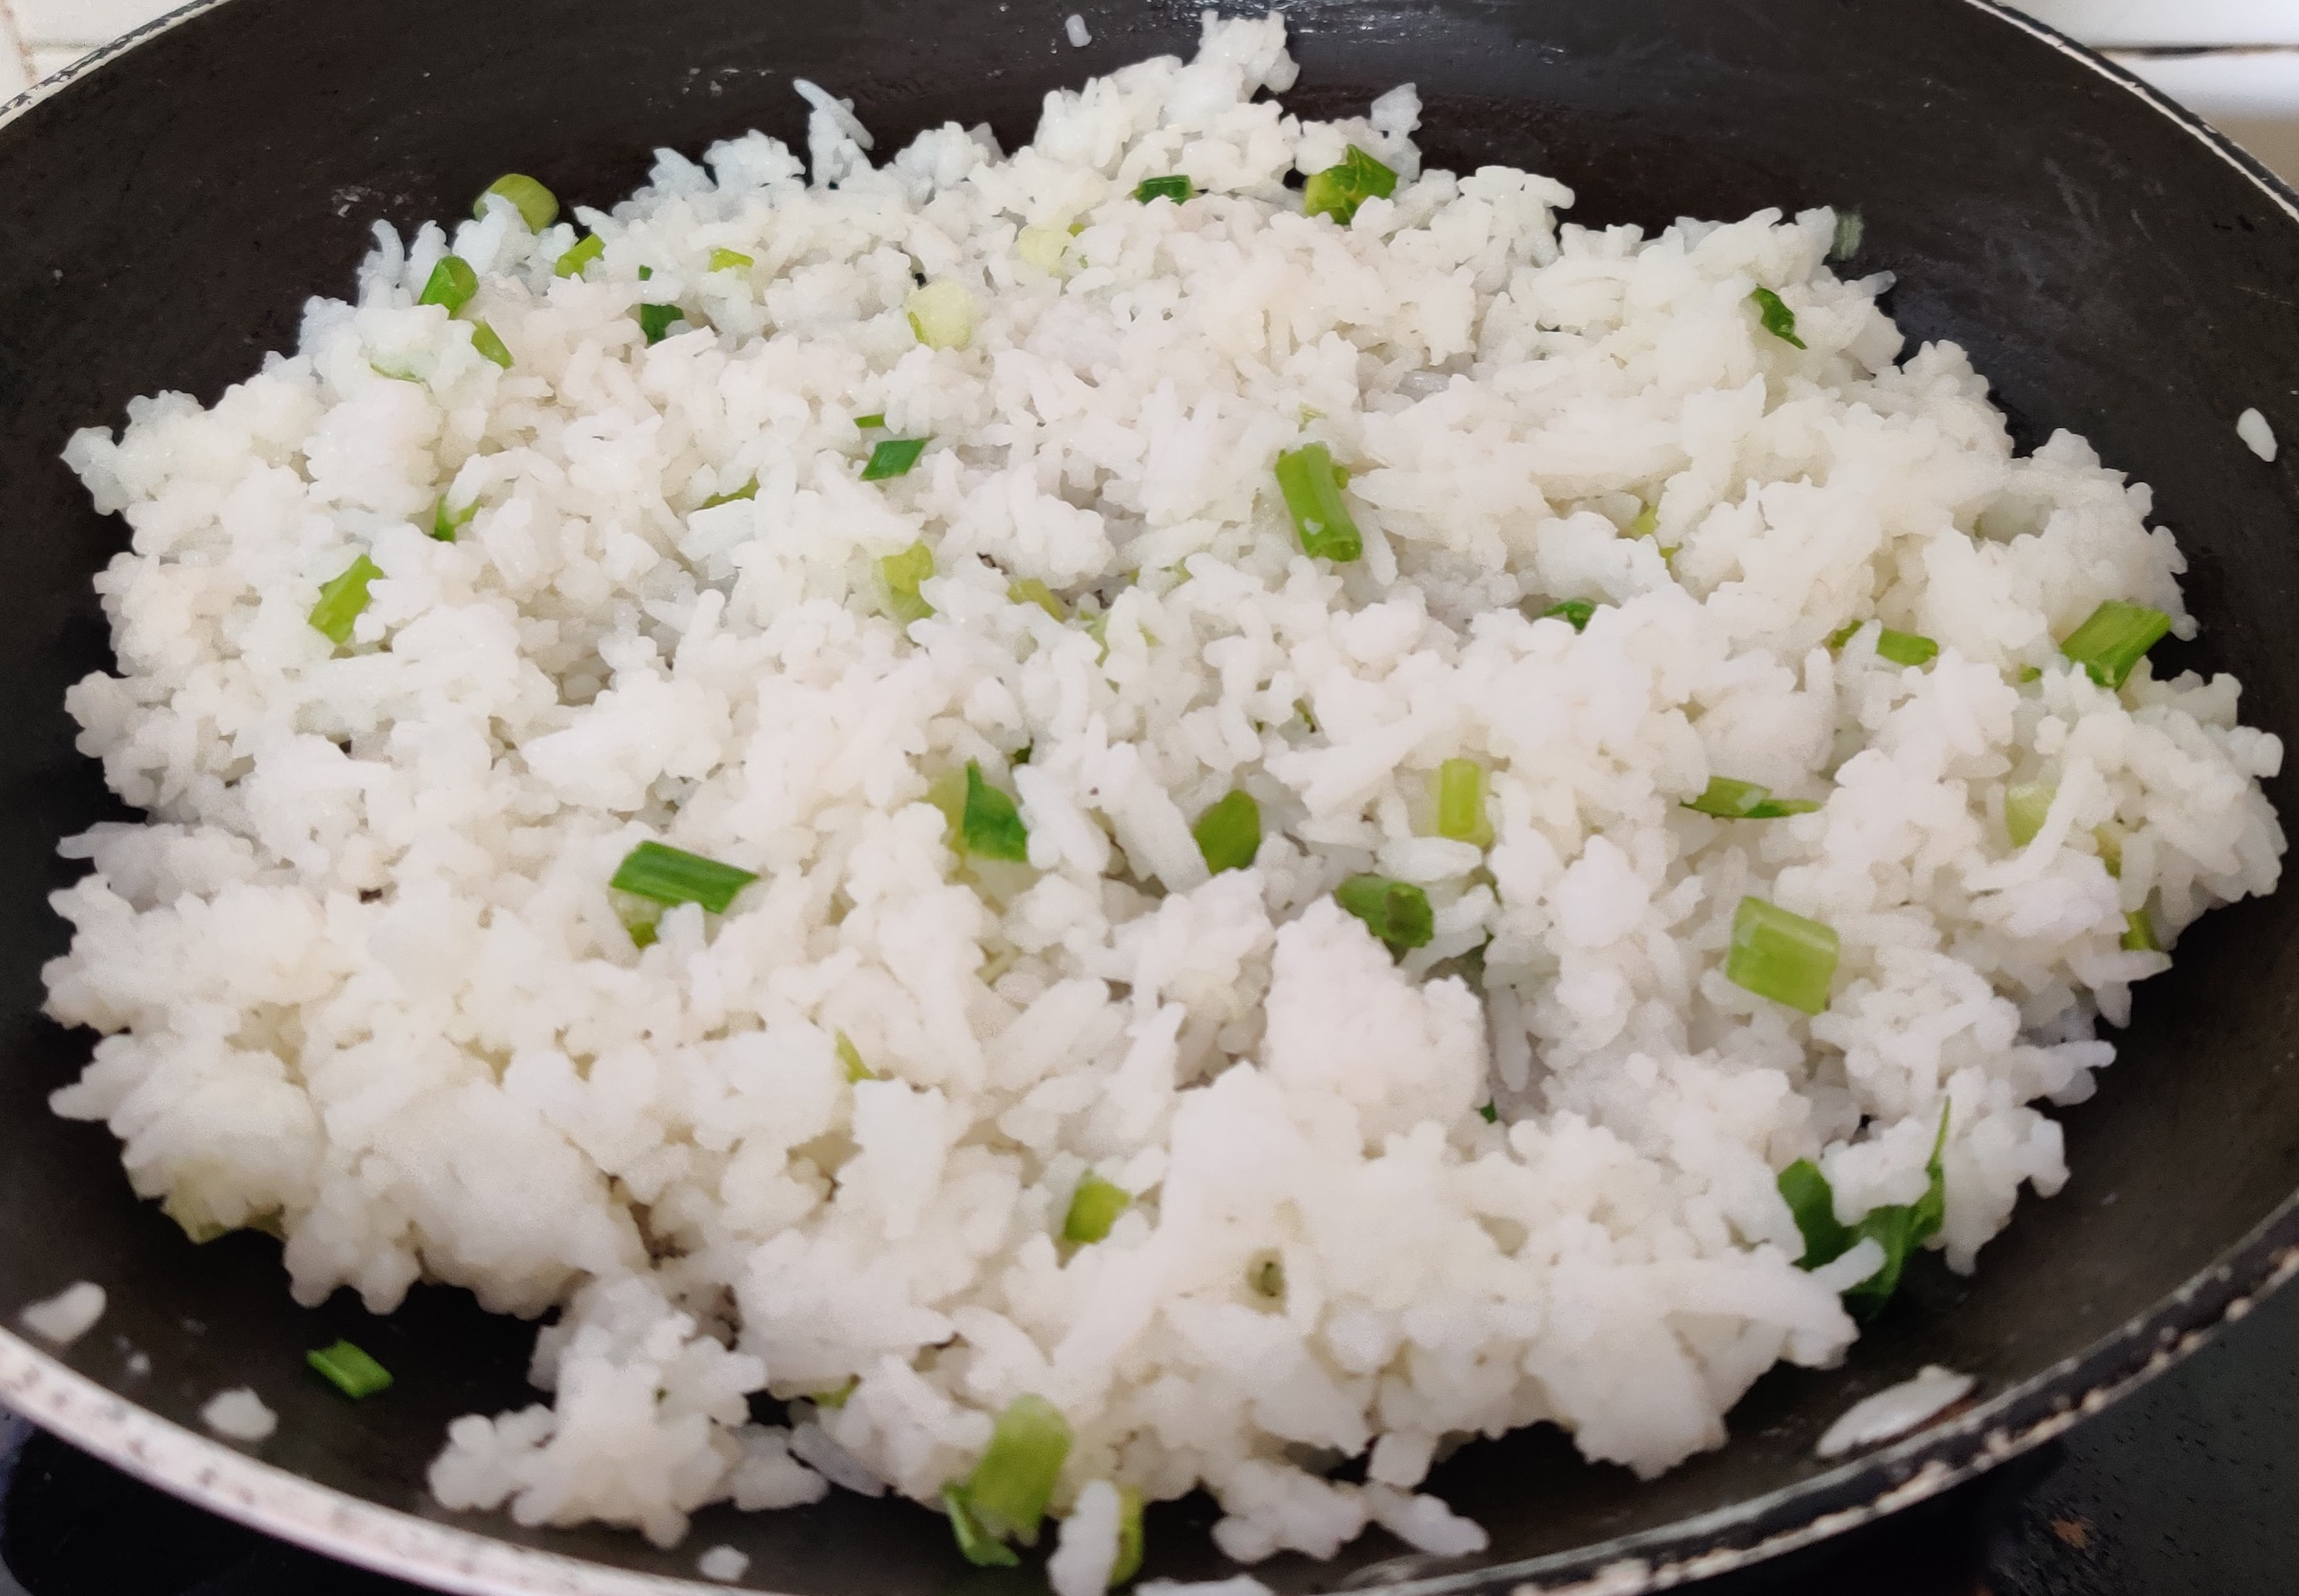 buttered rice with spring onion greens